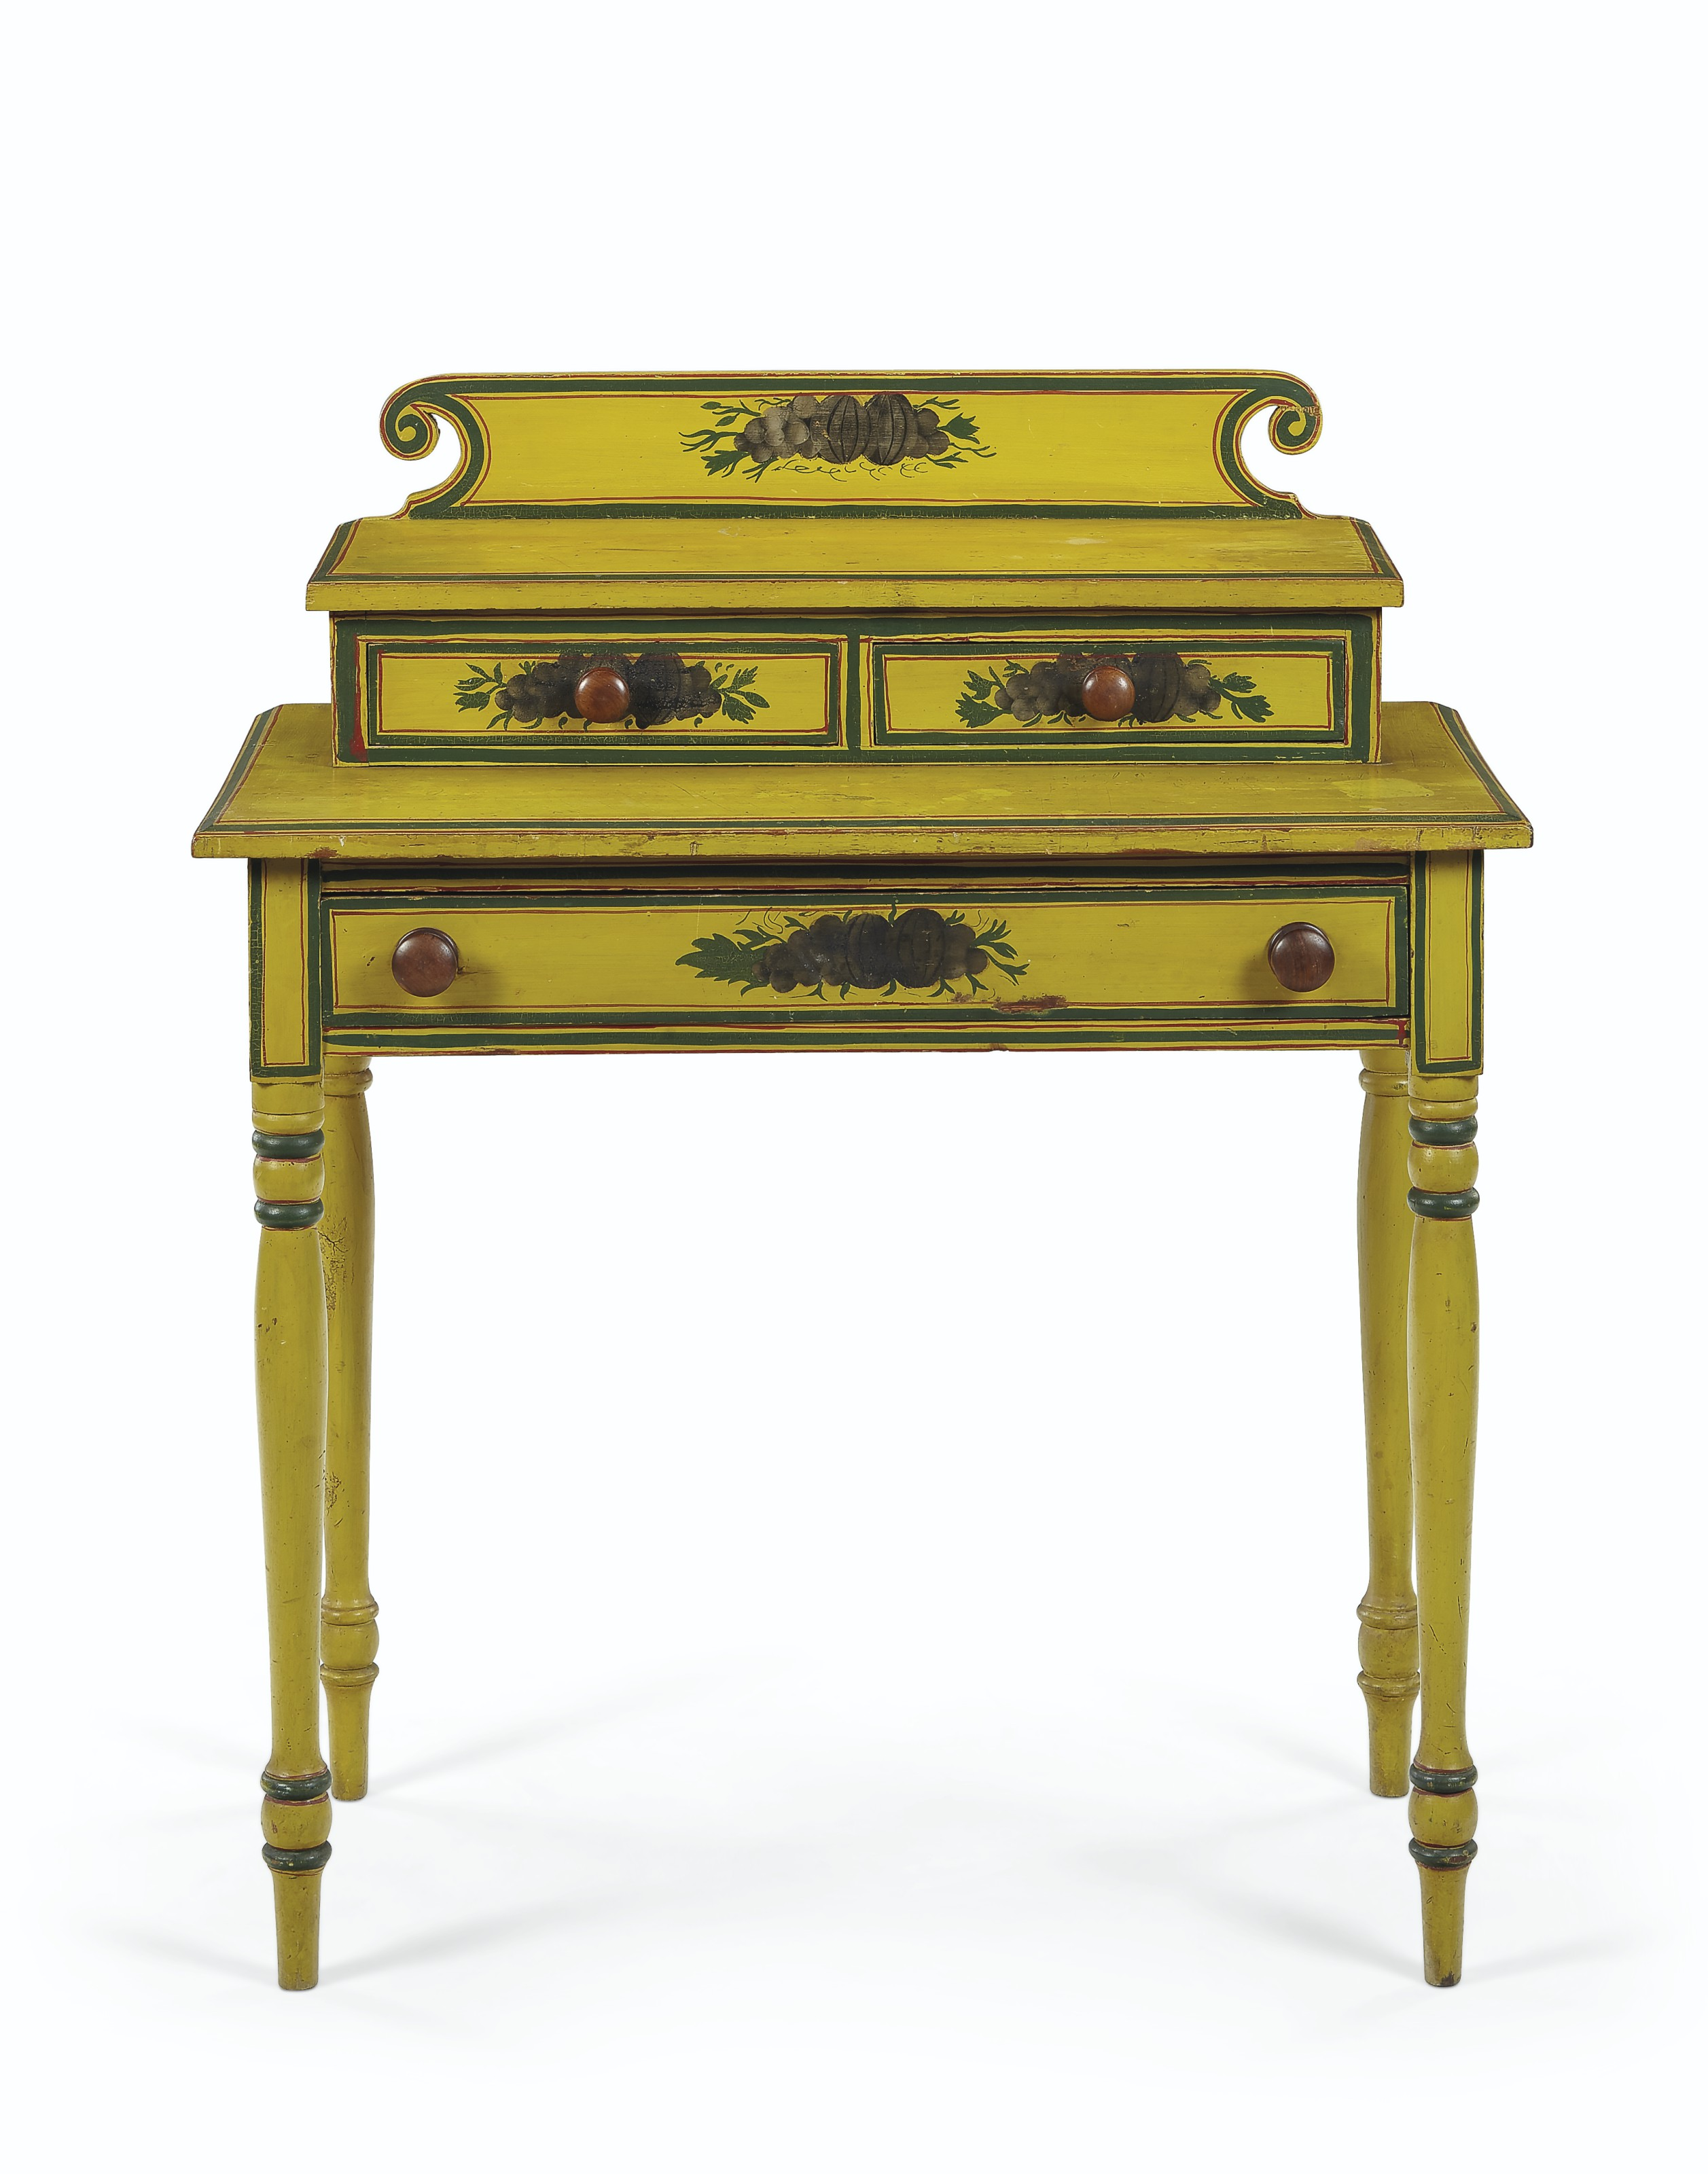 A LATE FEDERAL POLYCHROME-PAINTED DRESSING TABLE